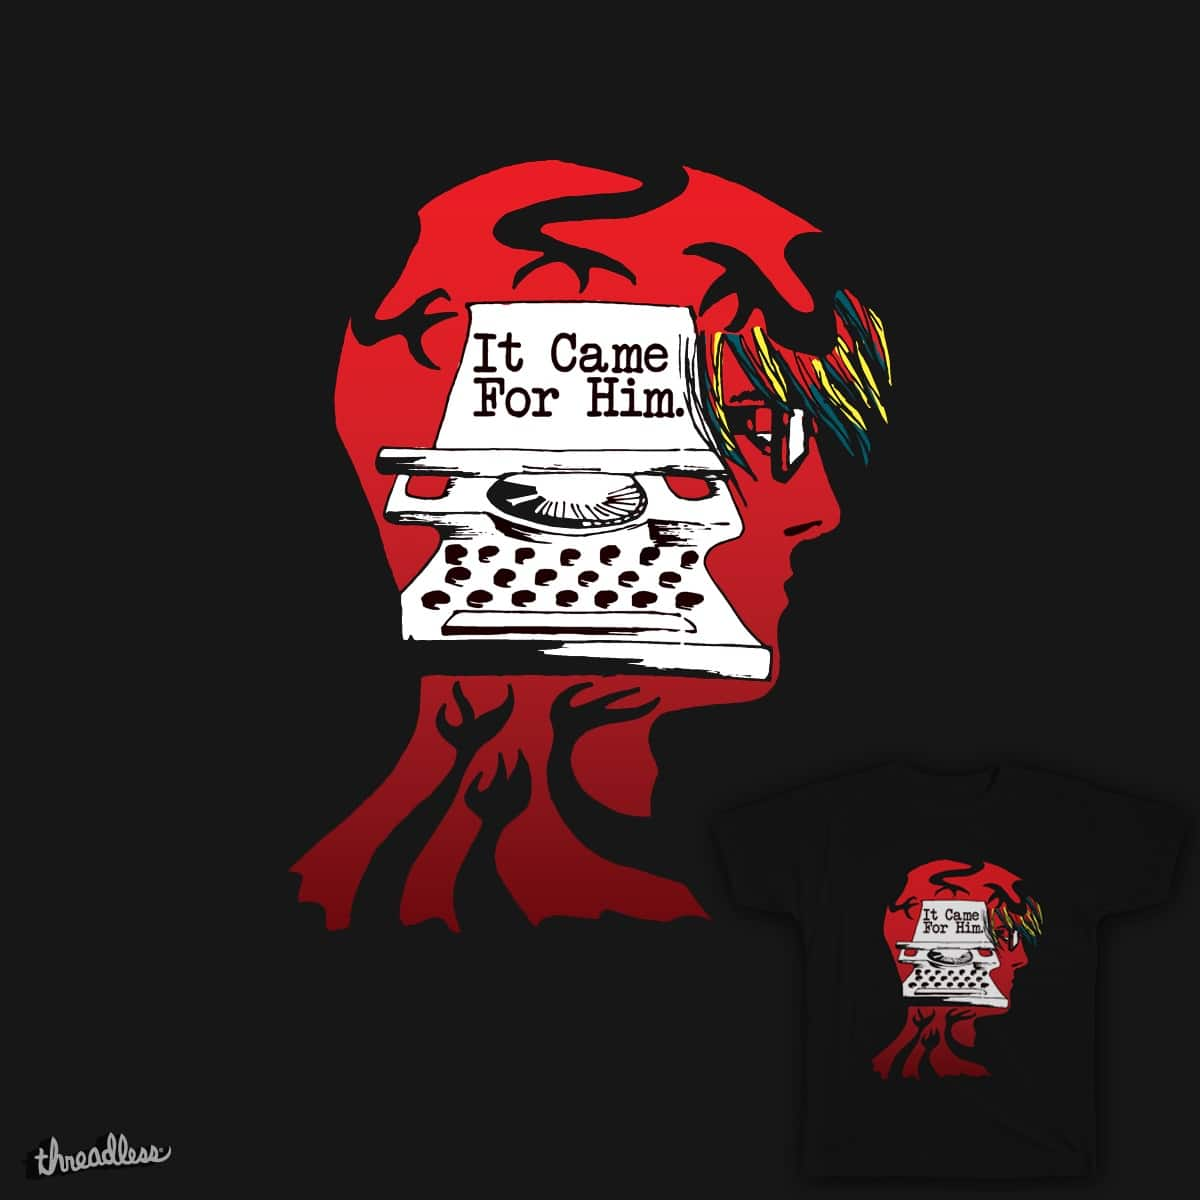 IT CAME FOR HIM by nightwing.amy on Threadless